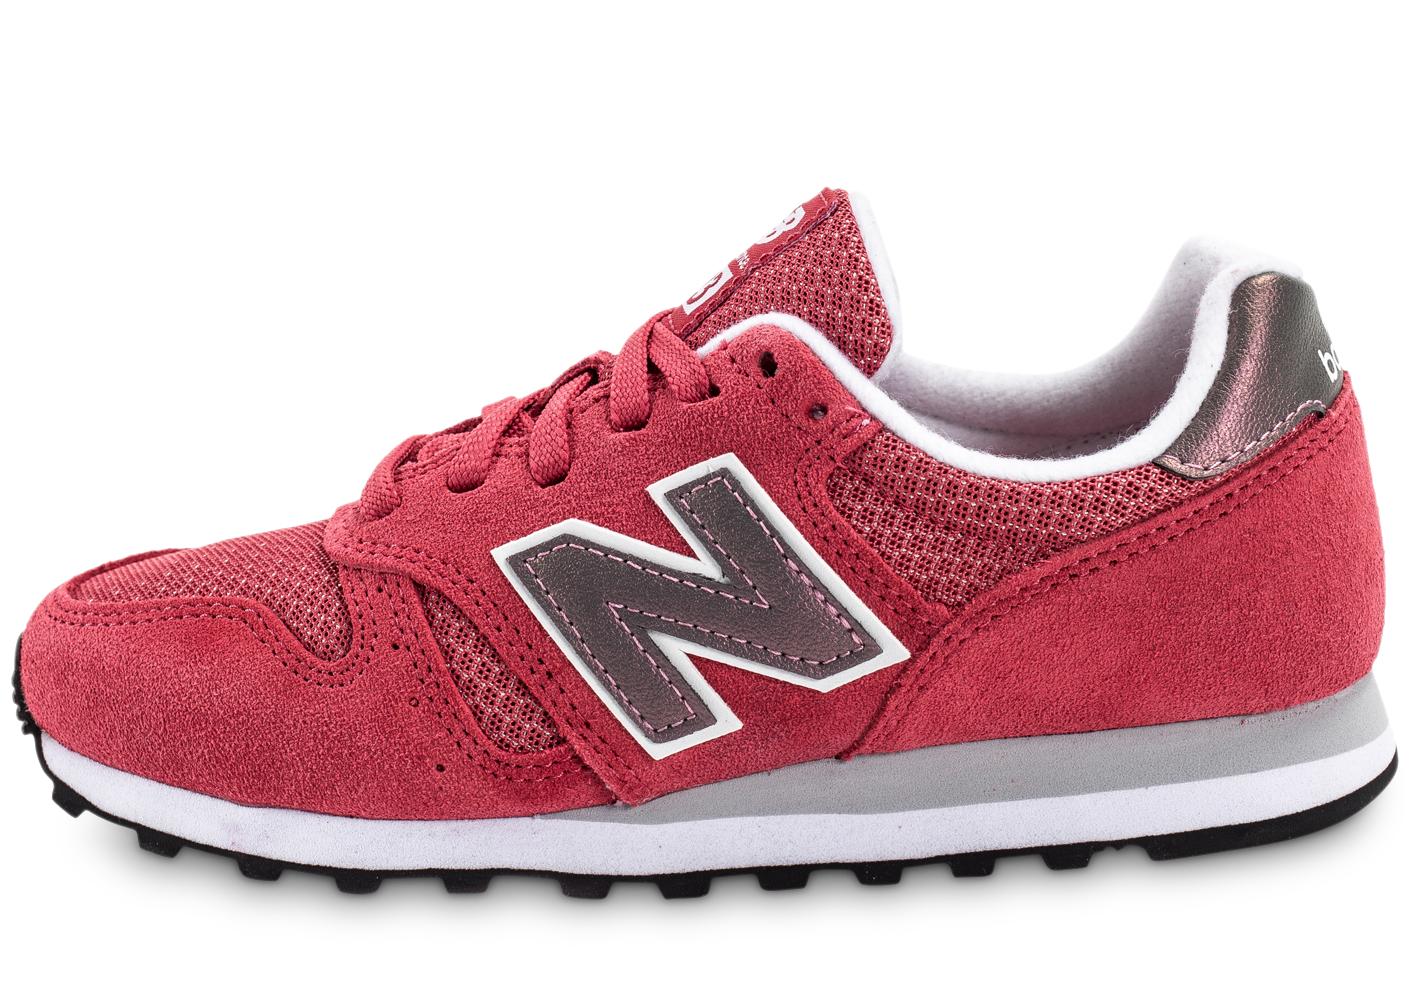 New Balance Wl373 Si Suede Rose Baskets/Running Femme